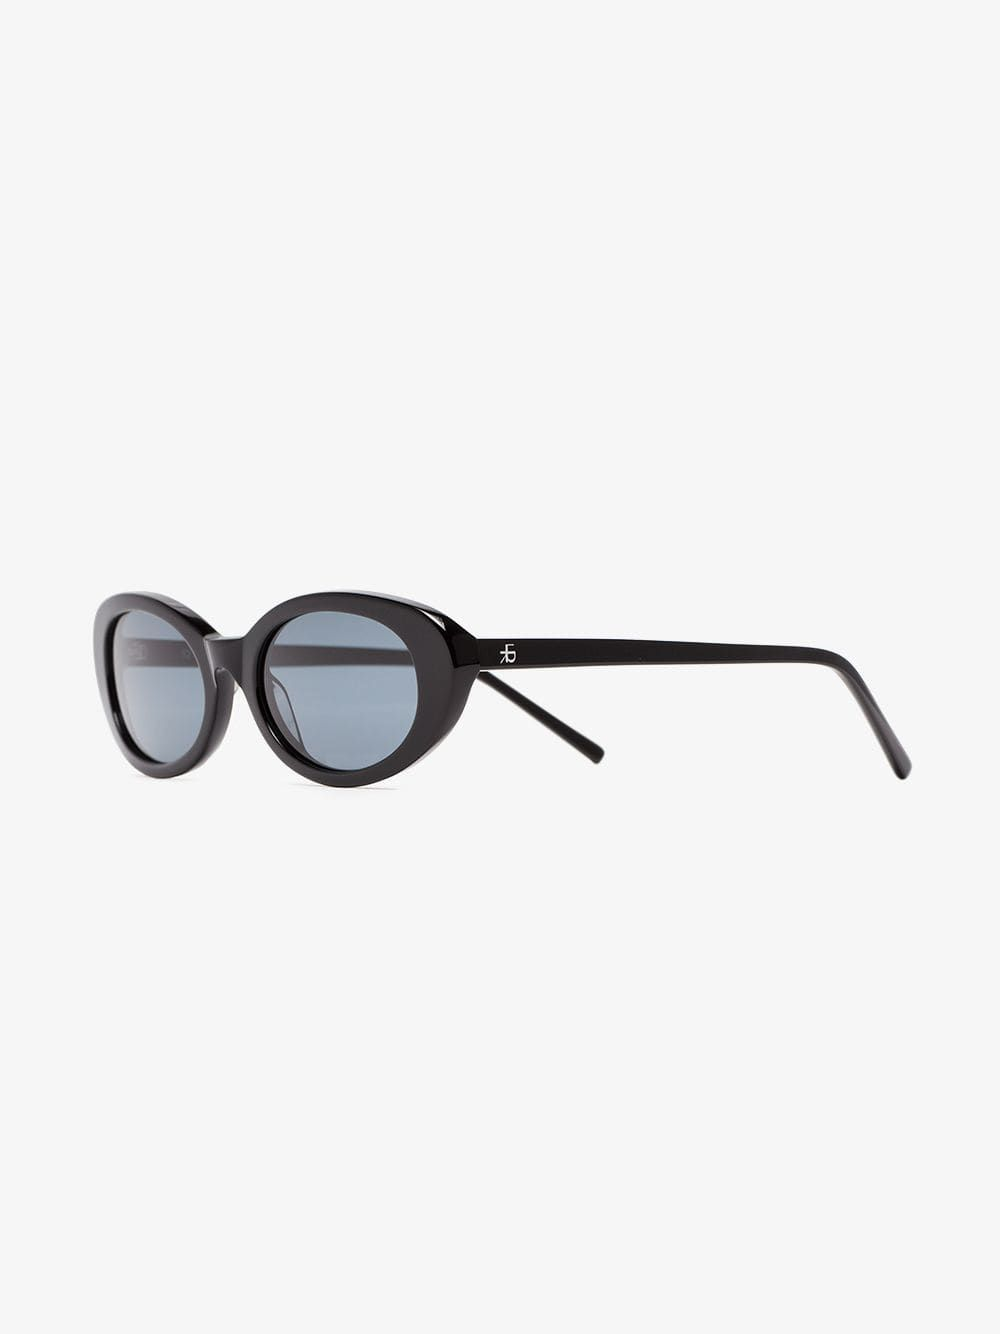 982175d2c6 Roberi   Fraud Black Betty Oval Sunglasses On Sale